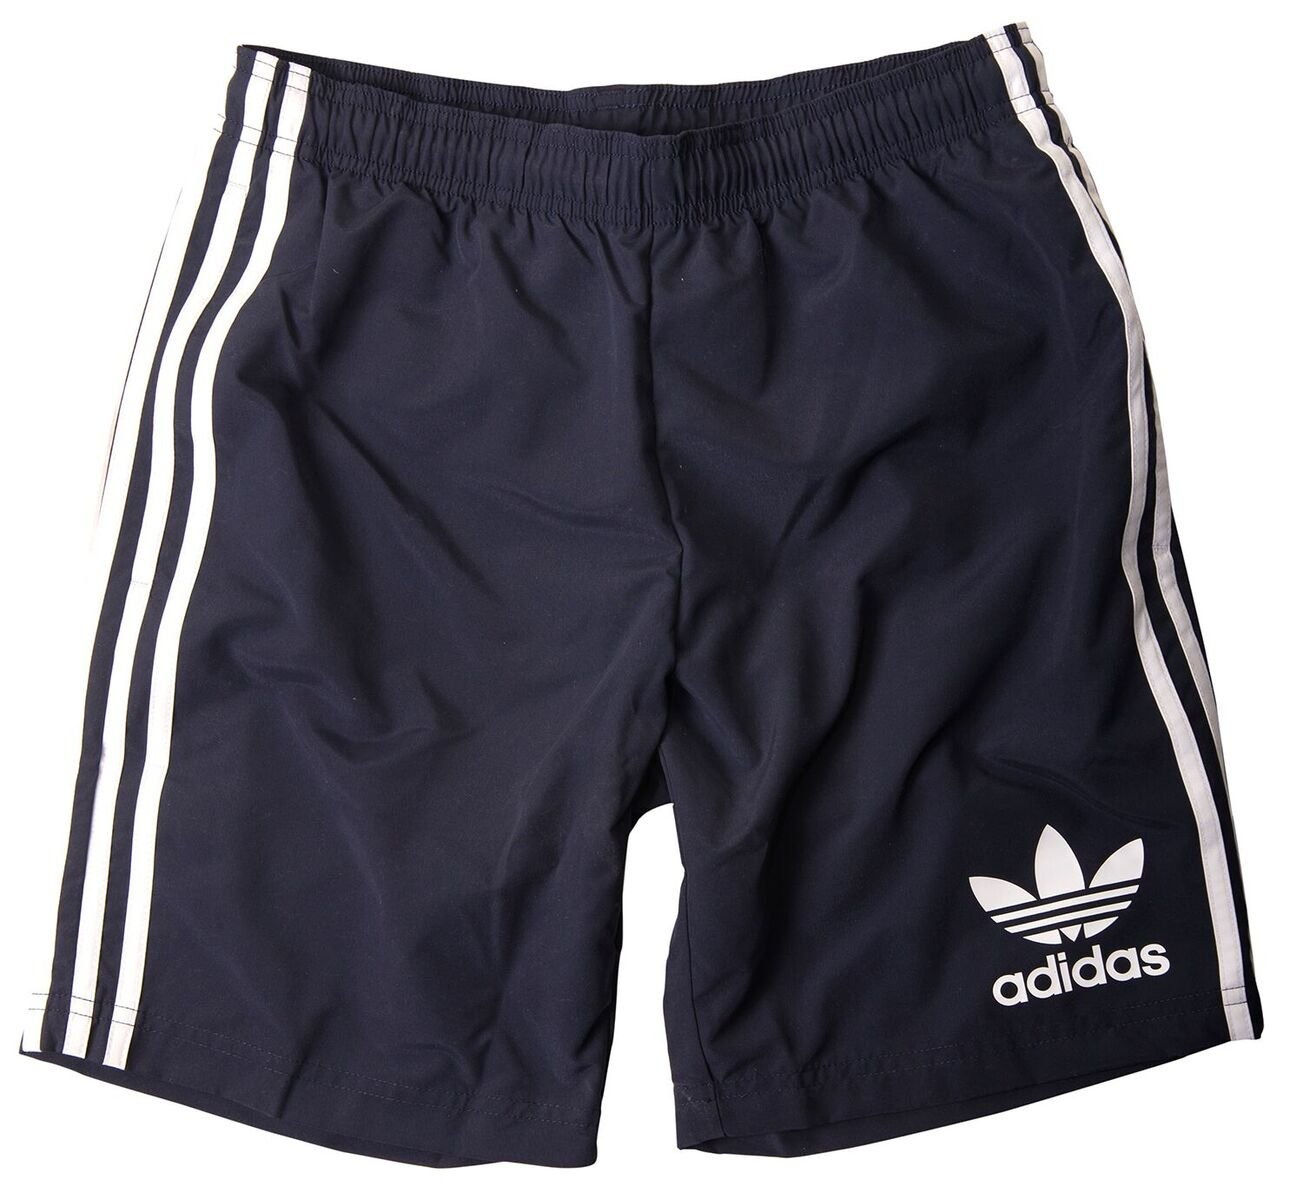 Adidas Originals Men's Board Shorts, Men, Originals